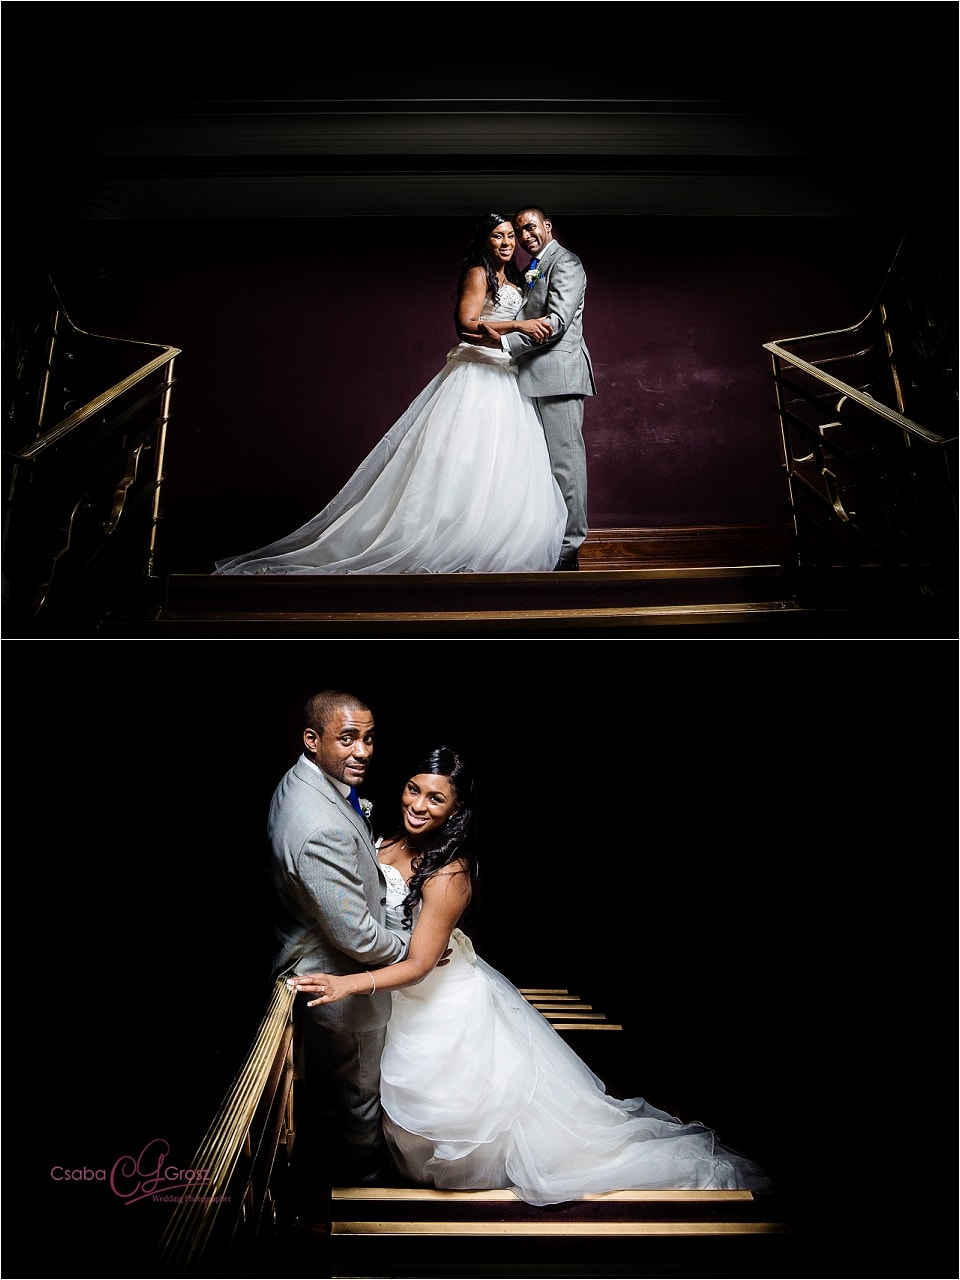 Ola and Ashley - Stoke Newington Wedding Photography4